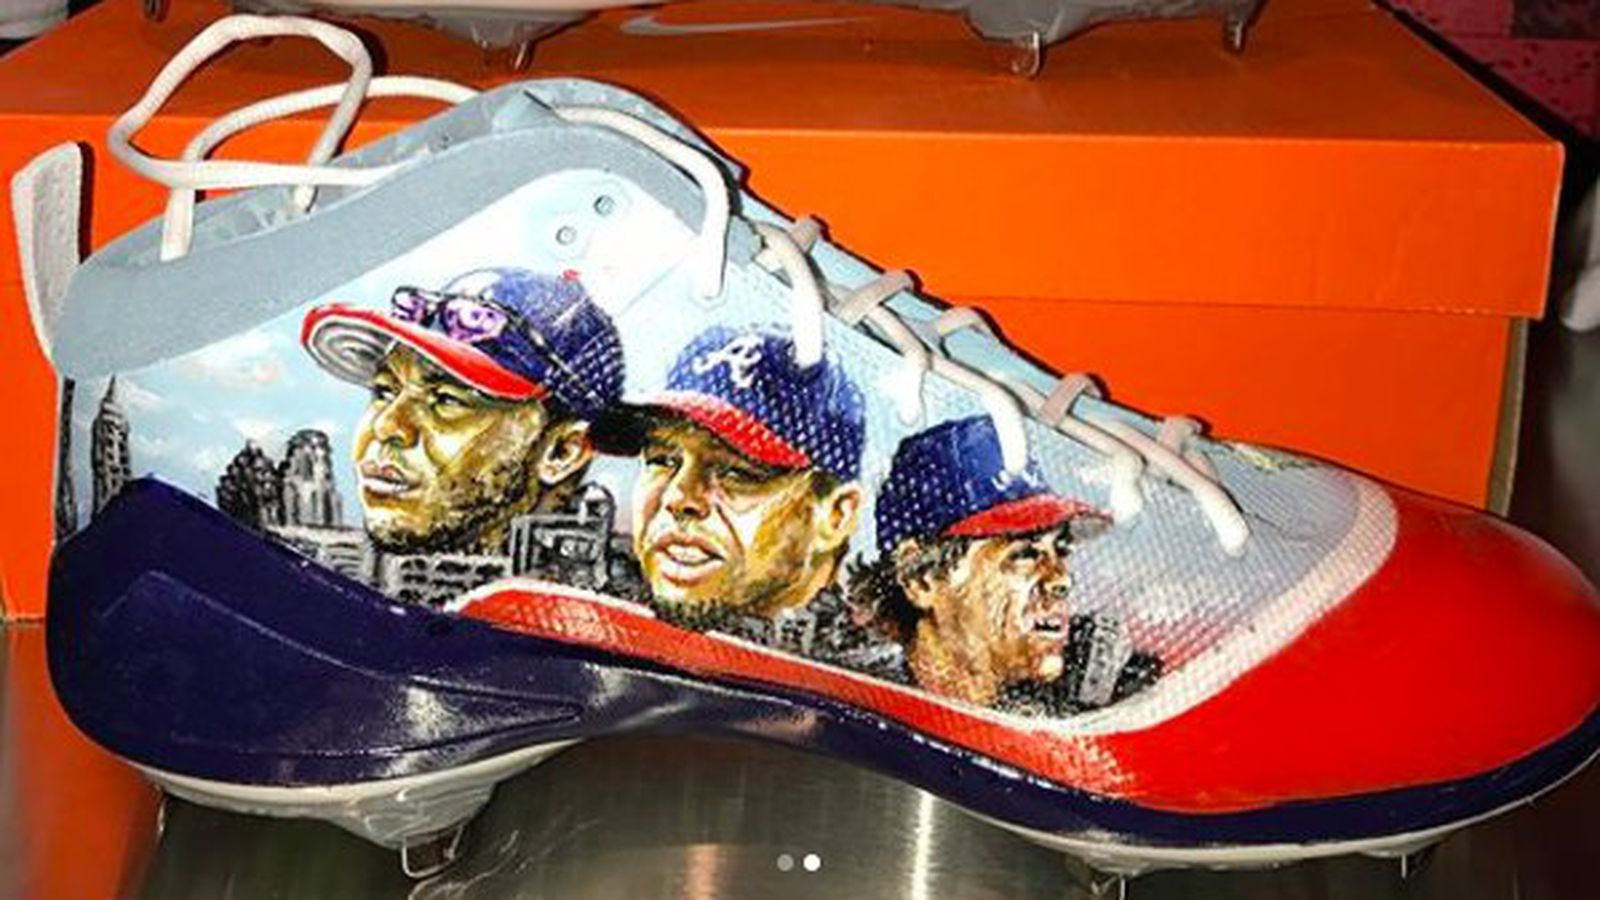 part be cleats Players the MLB Weekend might The best of